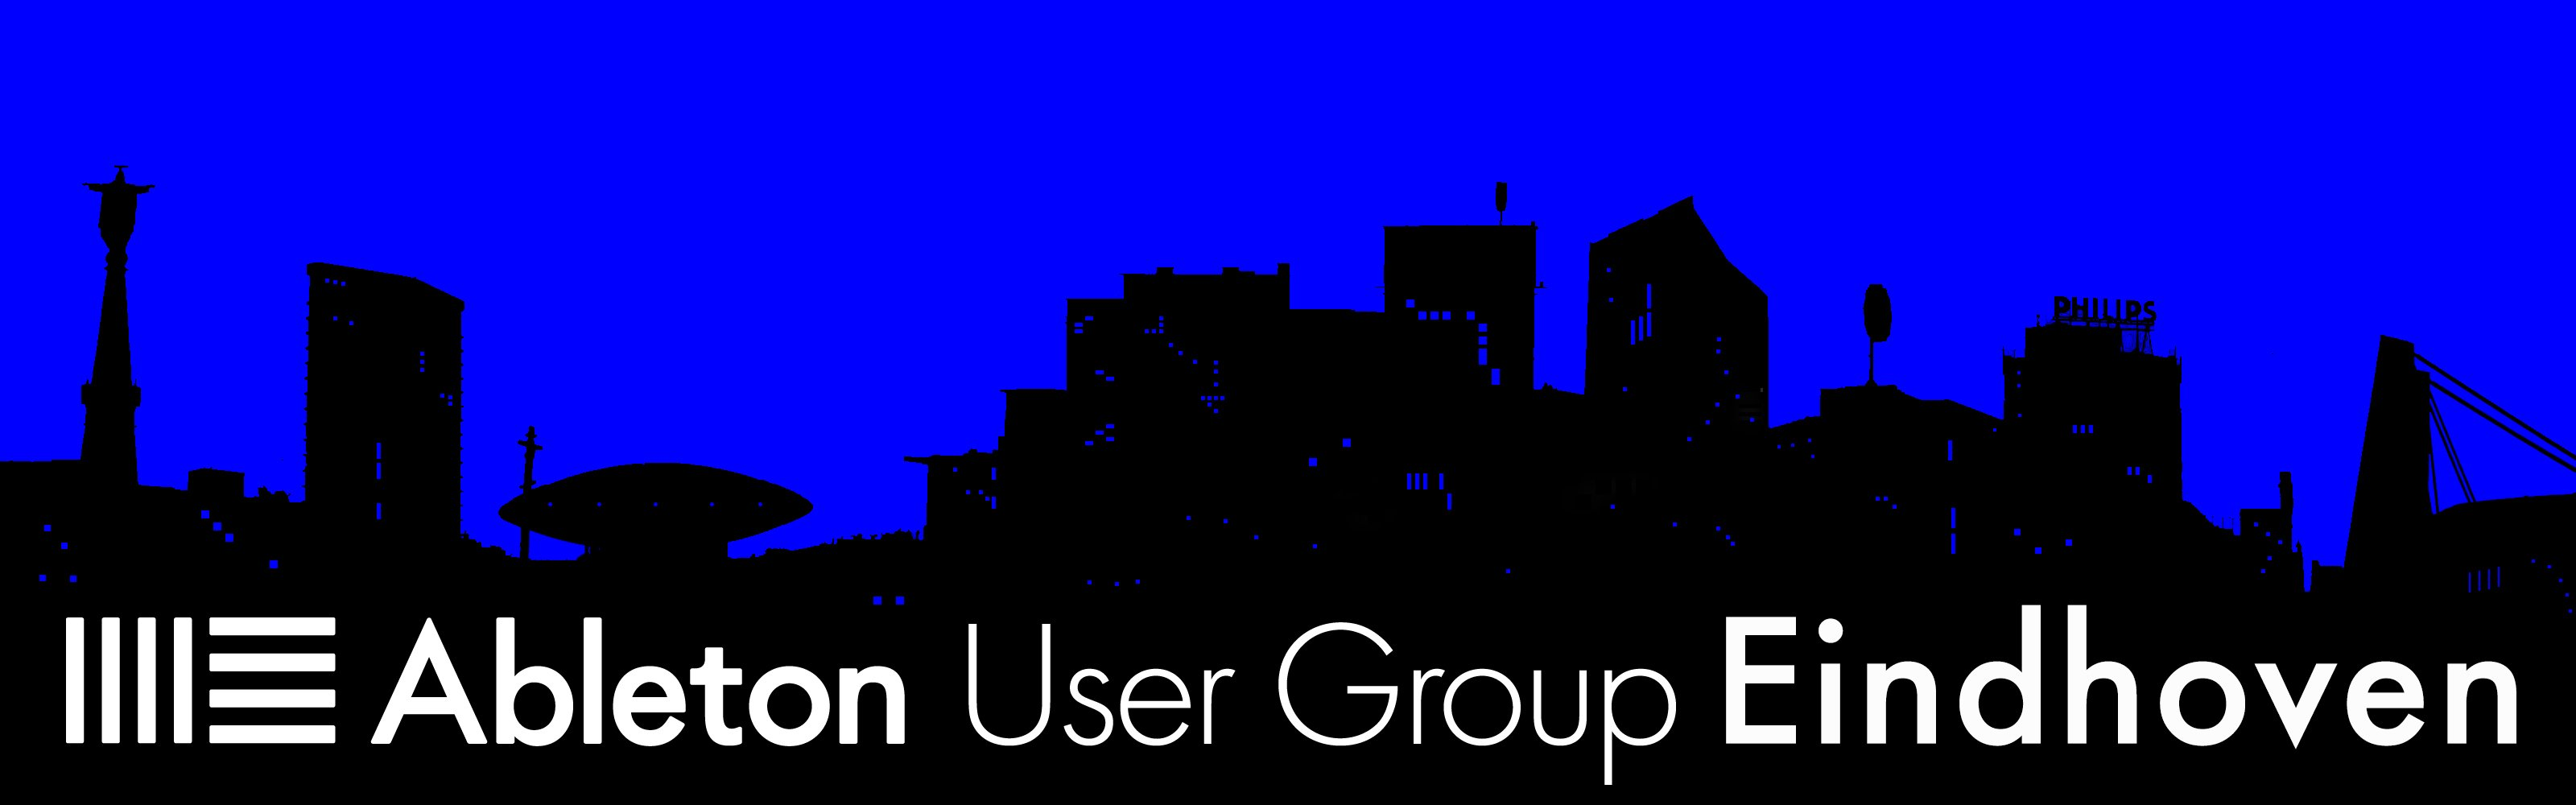 Ableton User Group Eindhoven